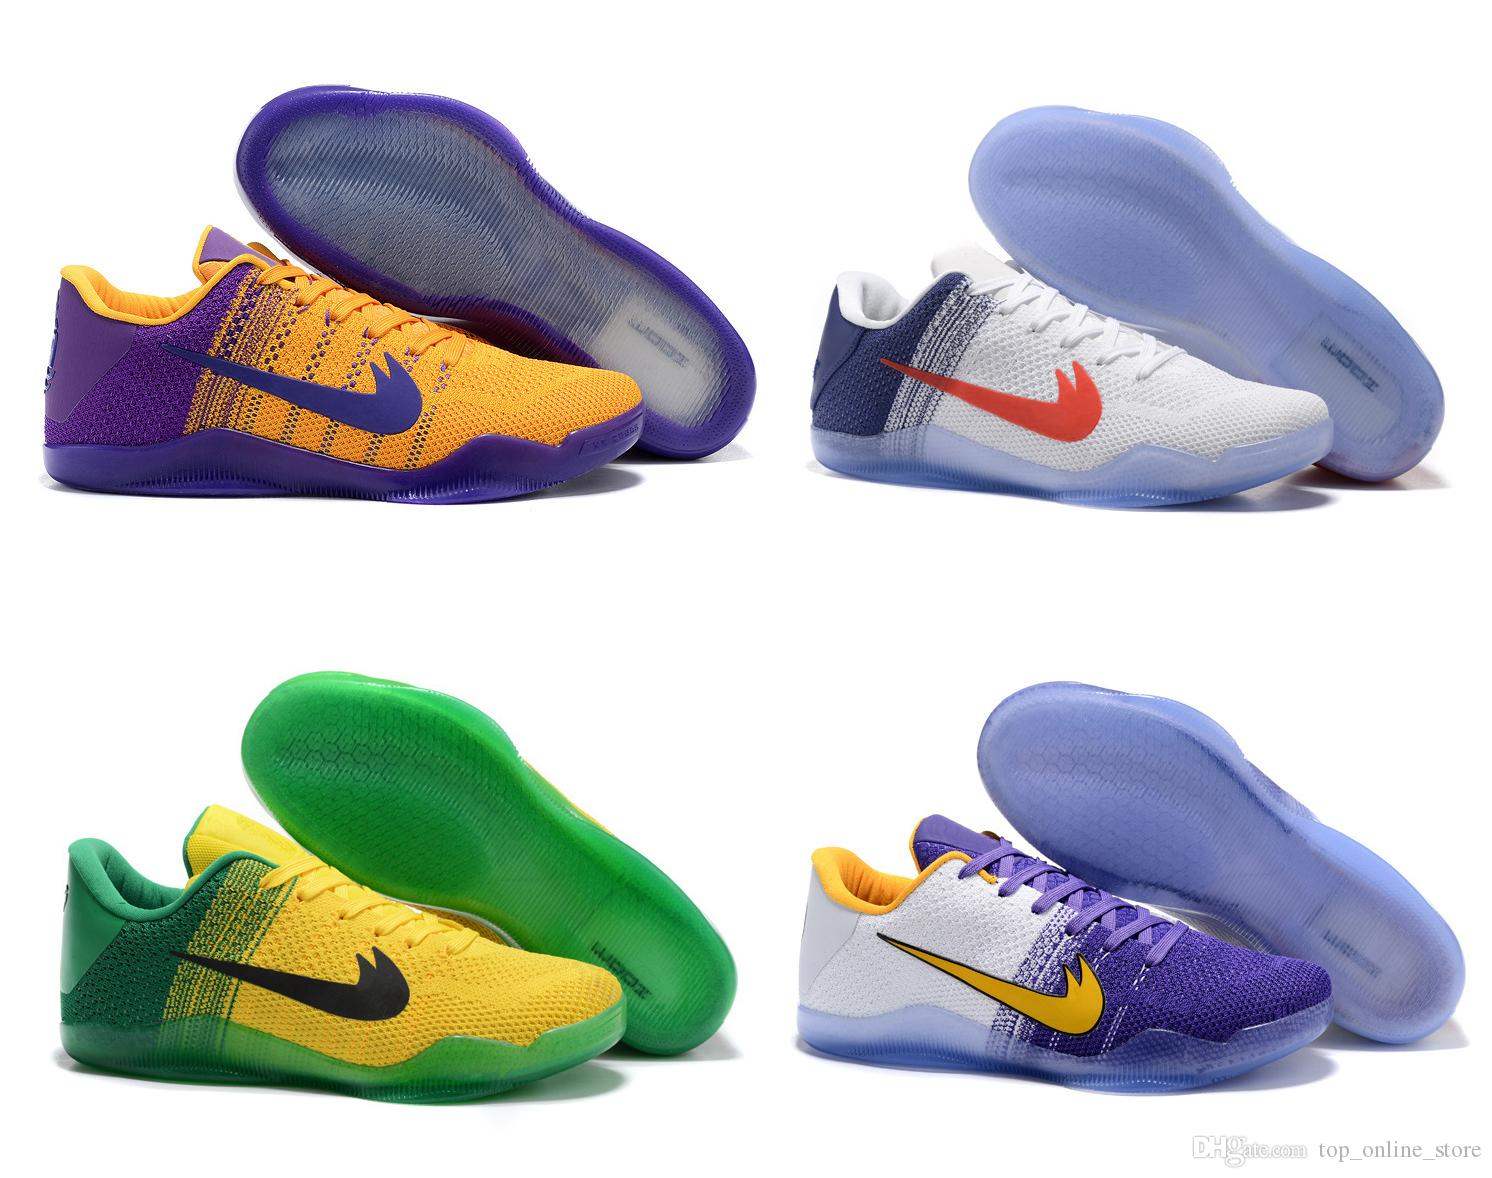 Nike Basketball Shoes Low Cut Price